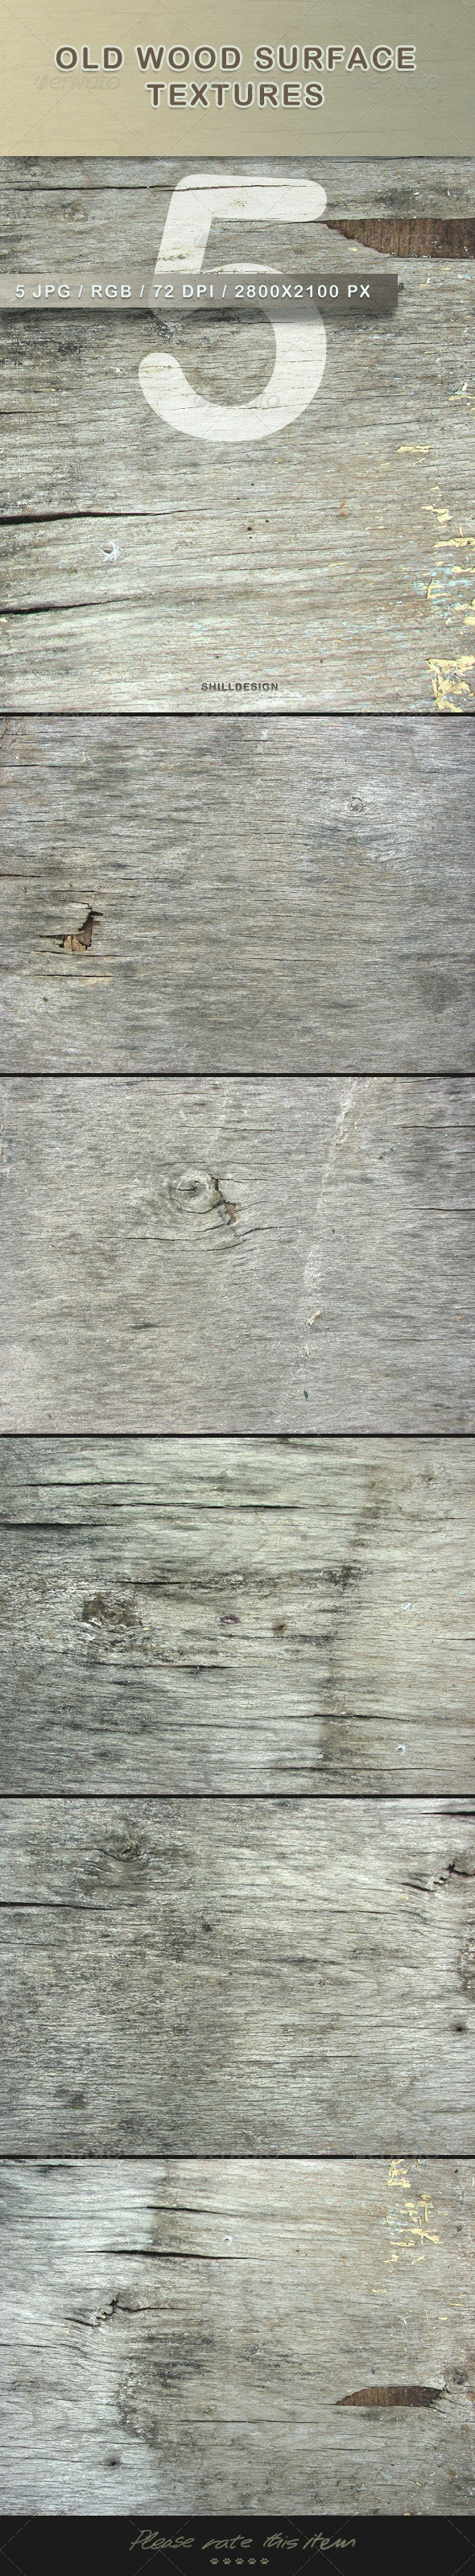 5 Old Wood Surface Textures